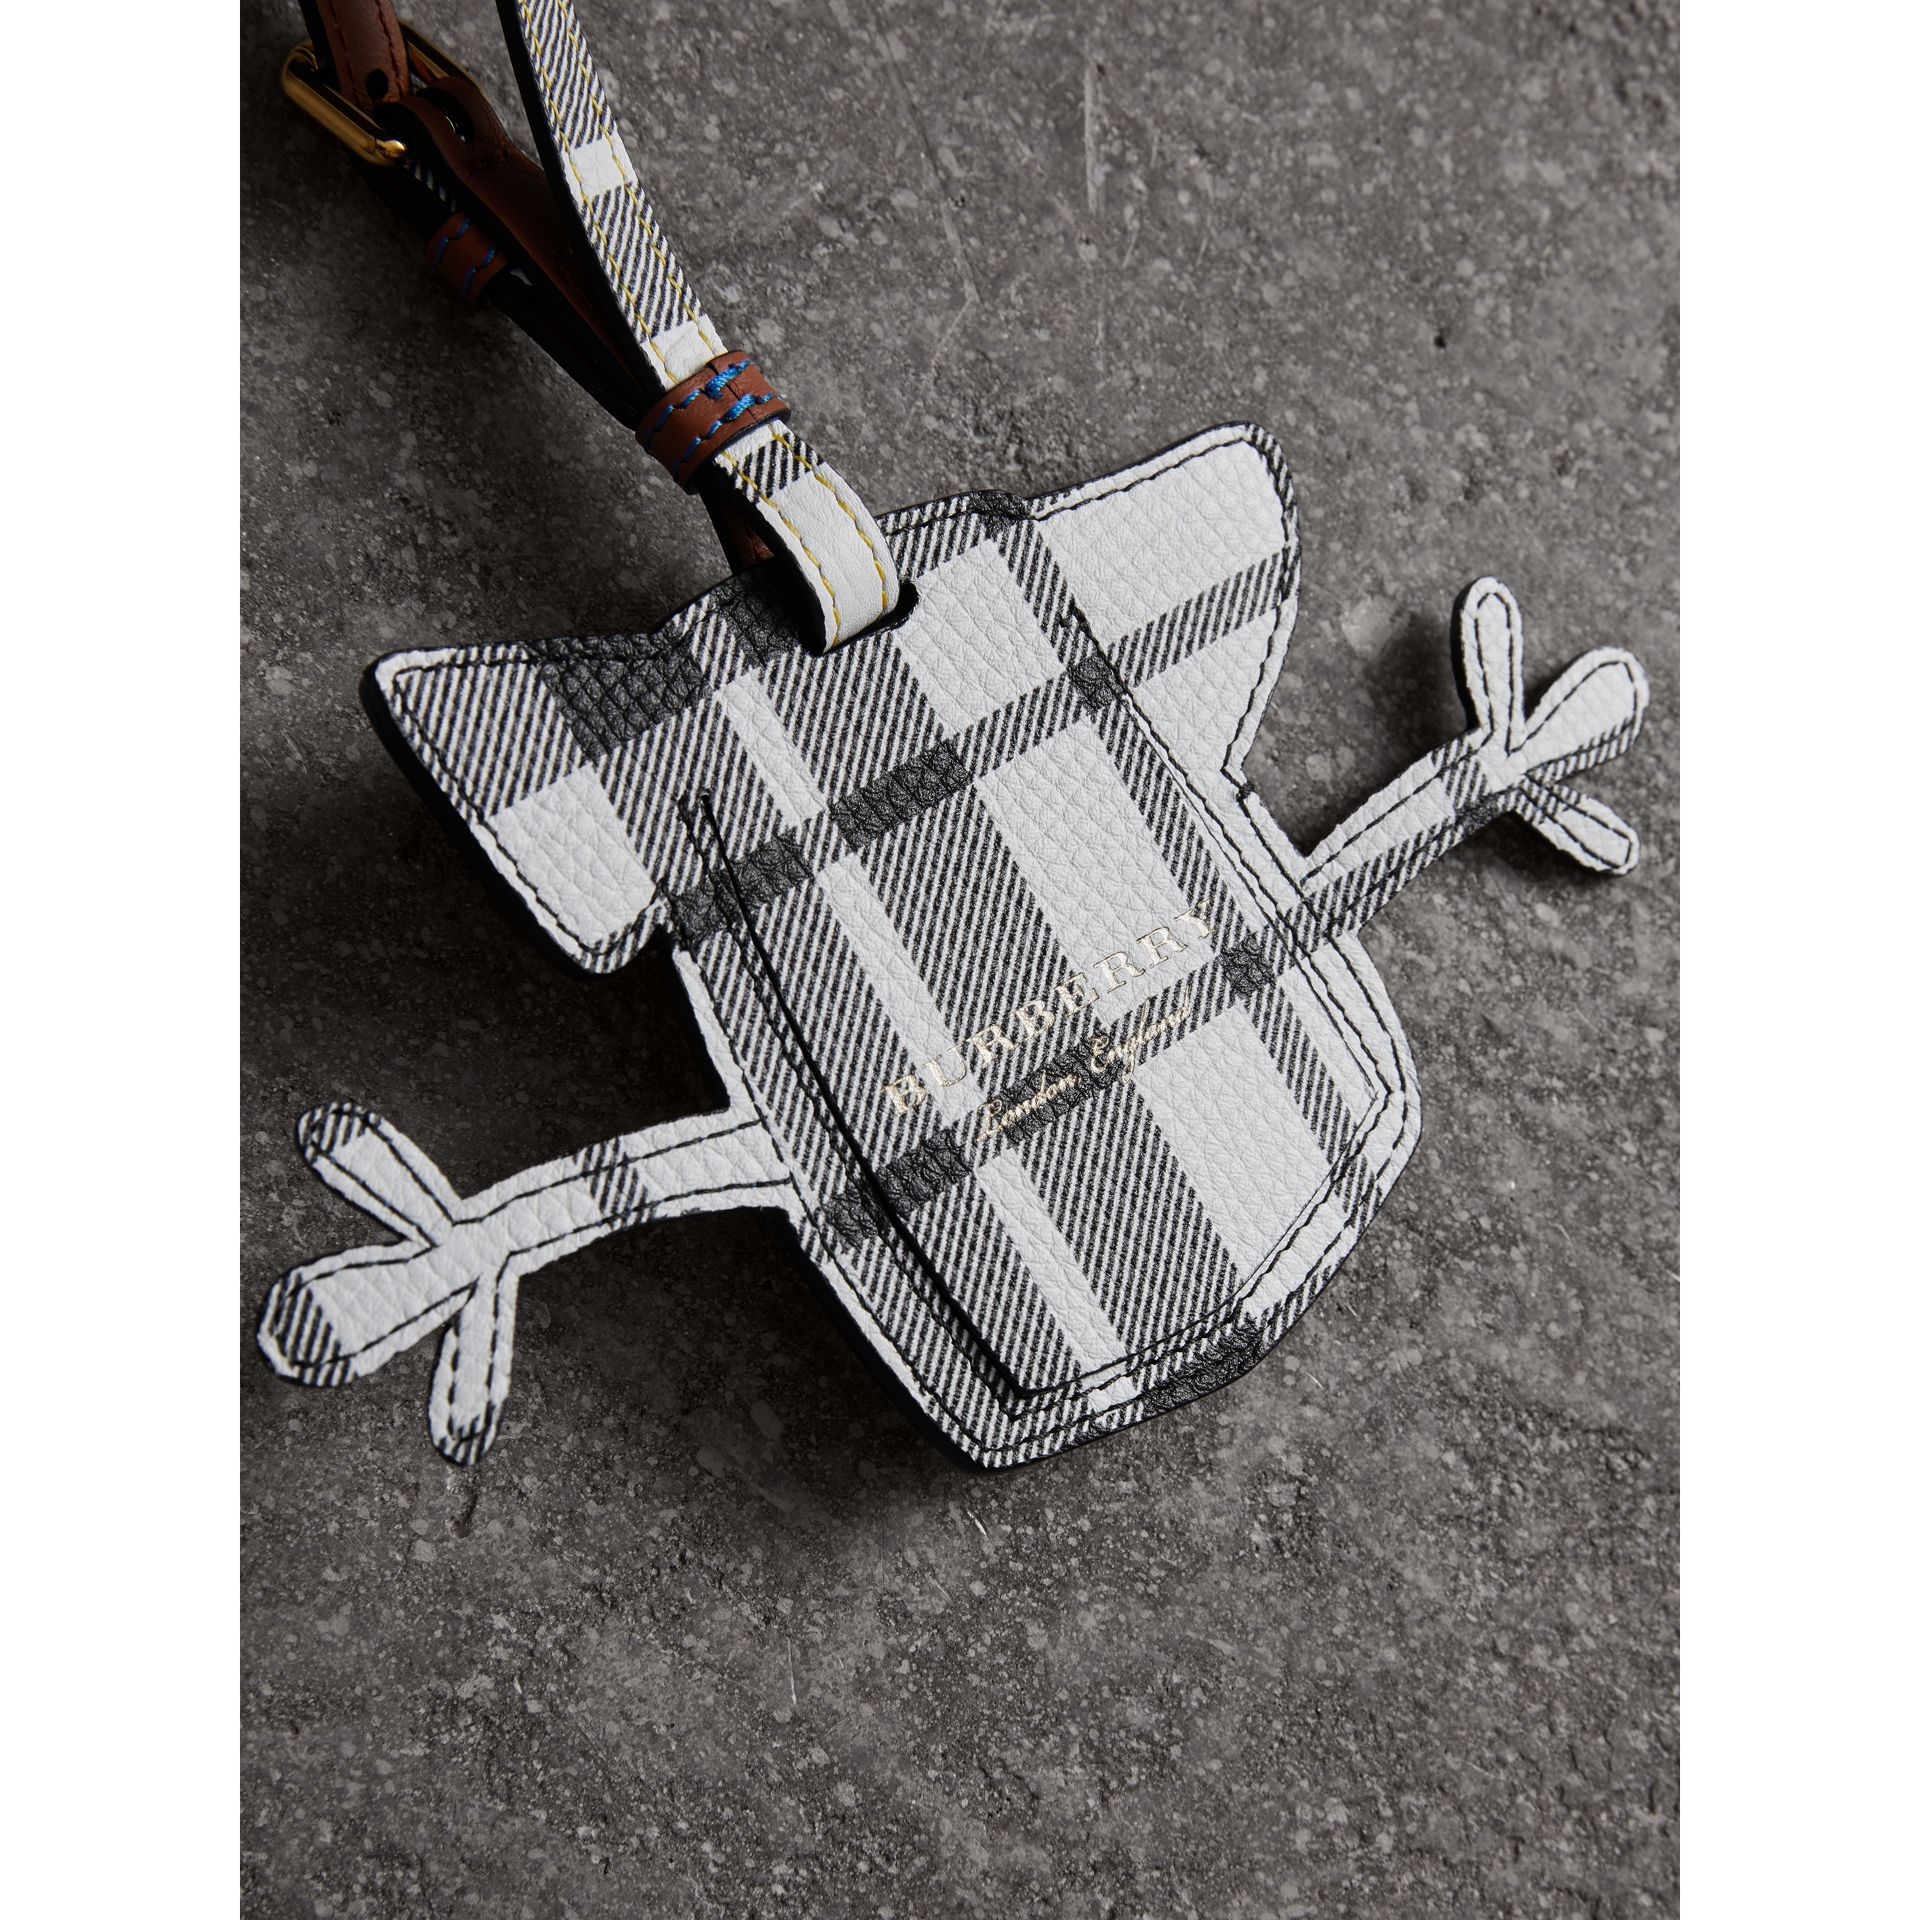 Creature Appliqué Leather Trim Luggage Tag in Racing Green | Burberry - gallery image 3